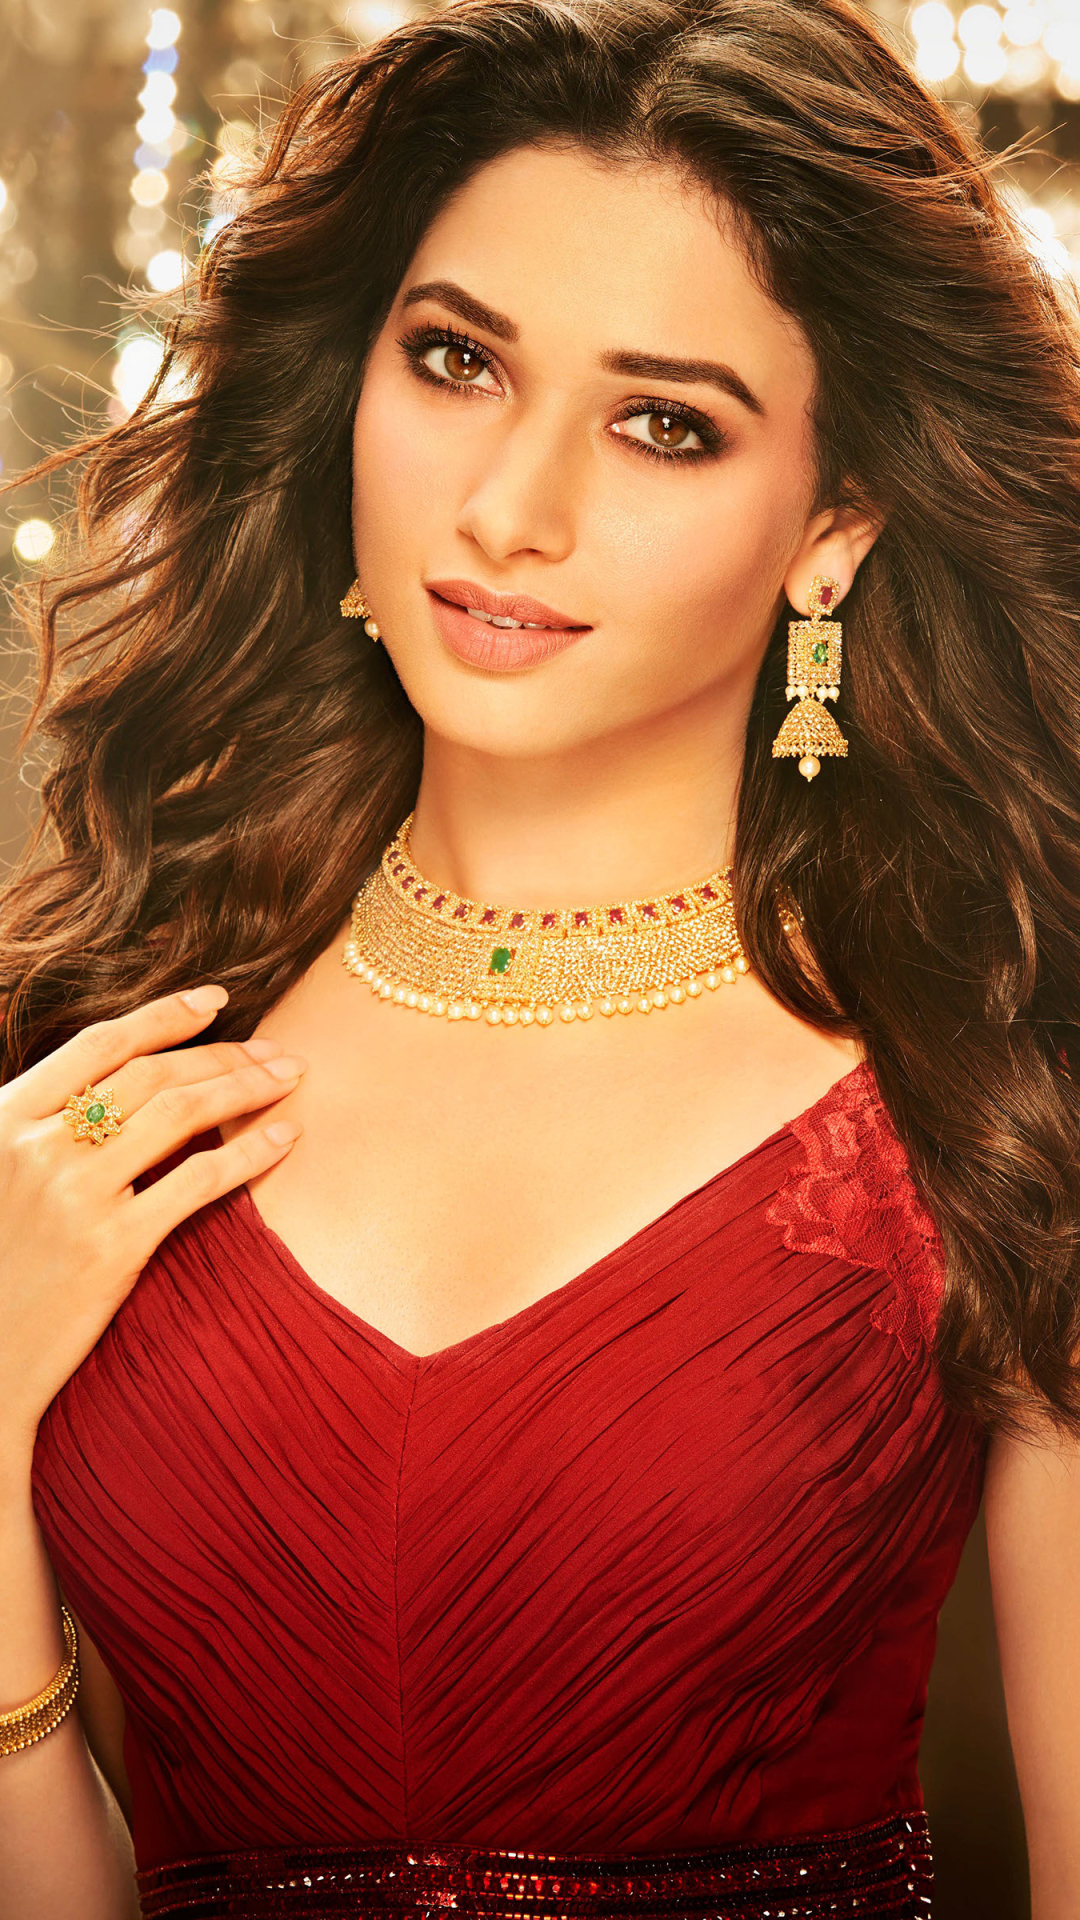 Tamannaah Bhatia Mobile Wallpaper